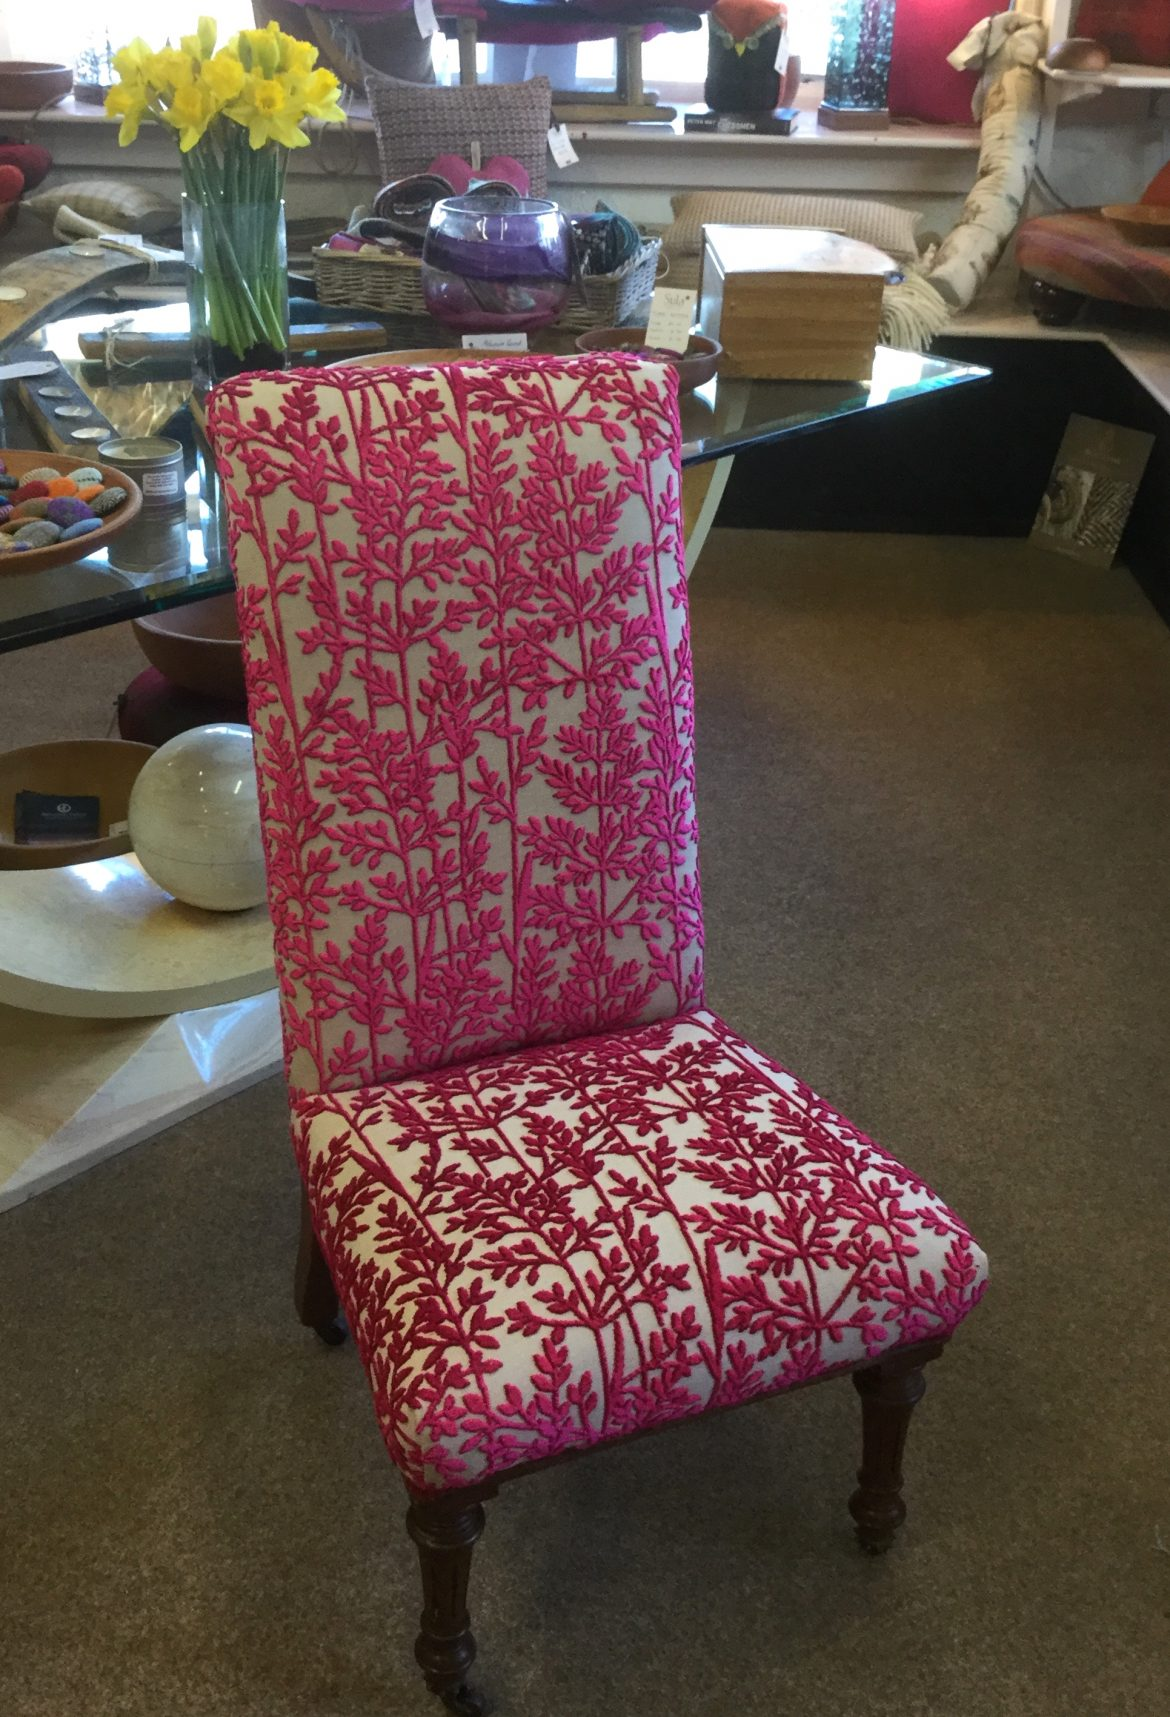 Nursing Chair Recovered in Voyage Batur Fabric